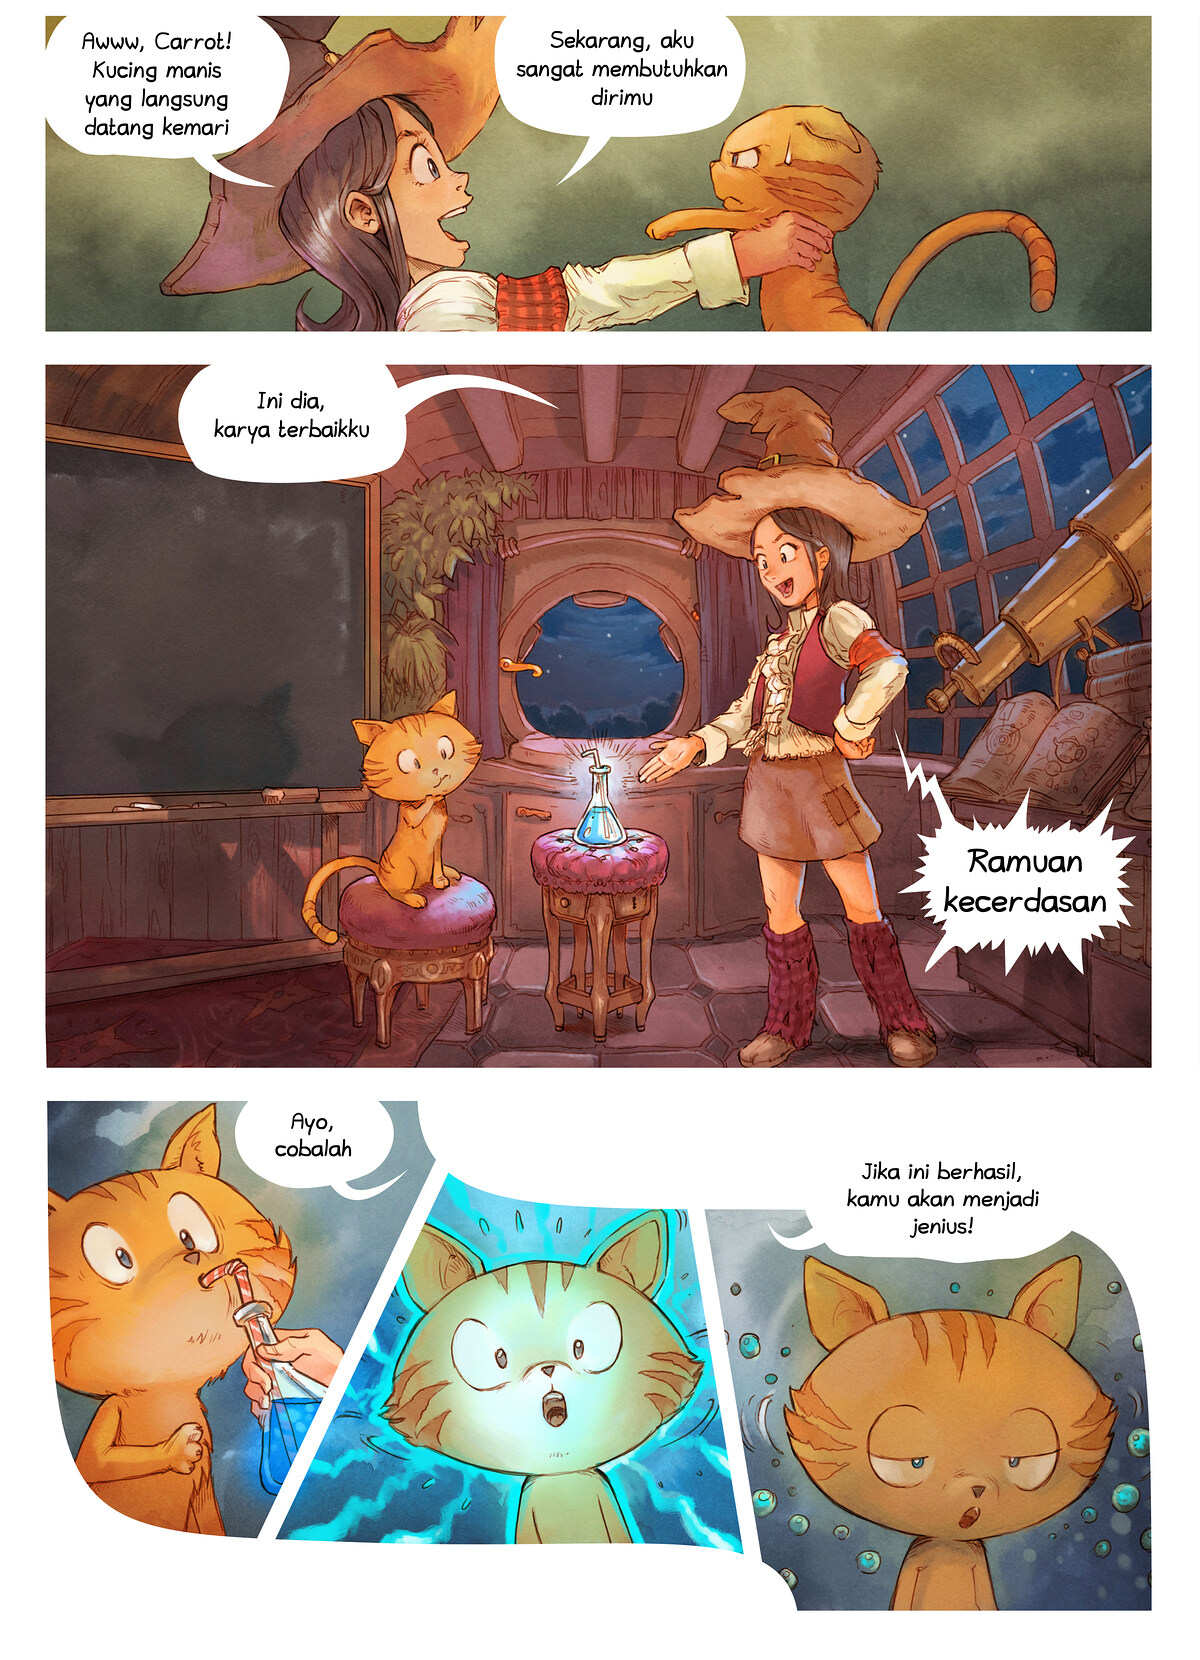 A webcomic page of Pepper&Carrot, episode 4 [id], halaman 3